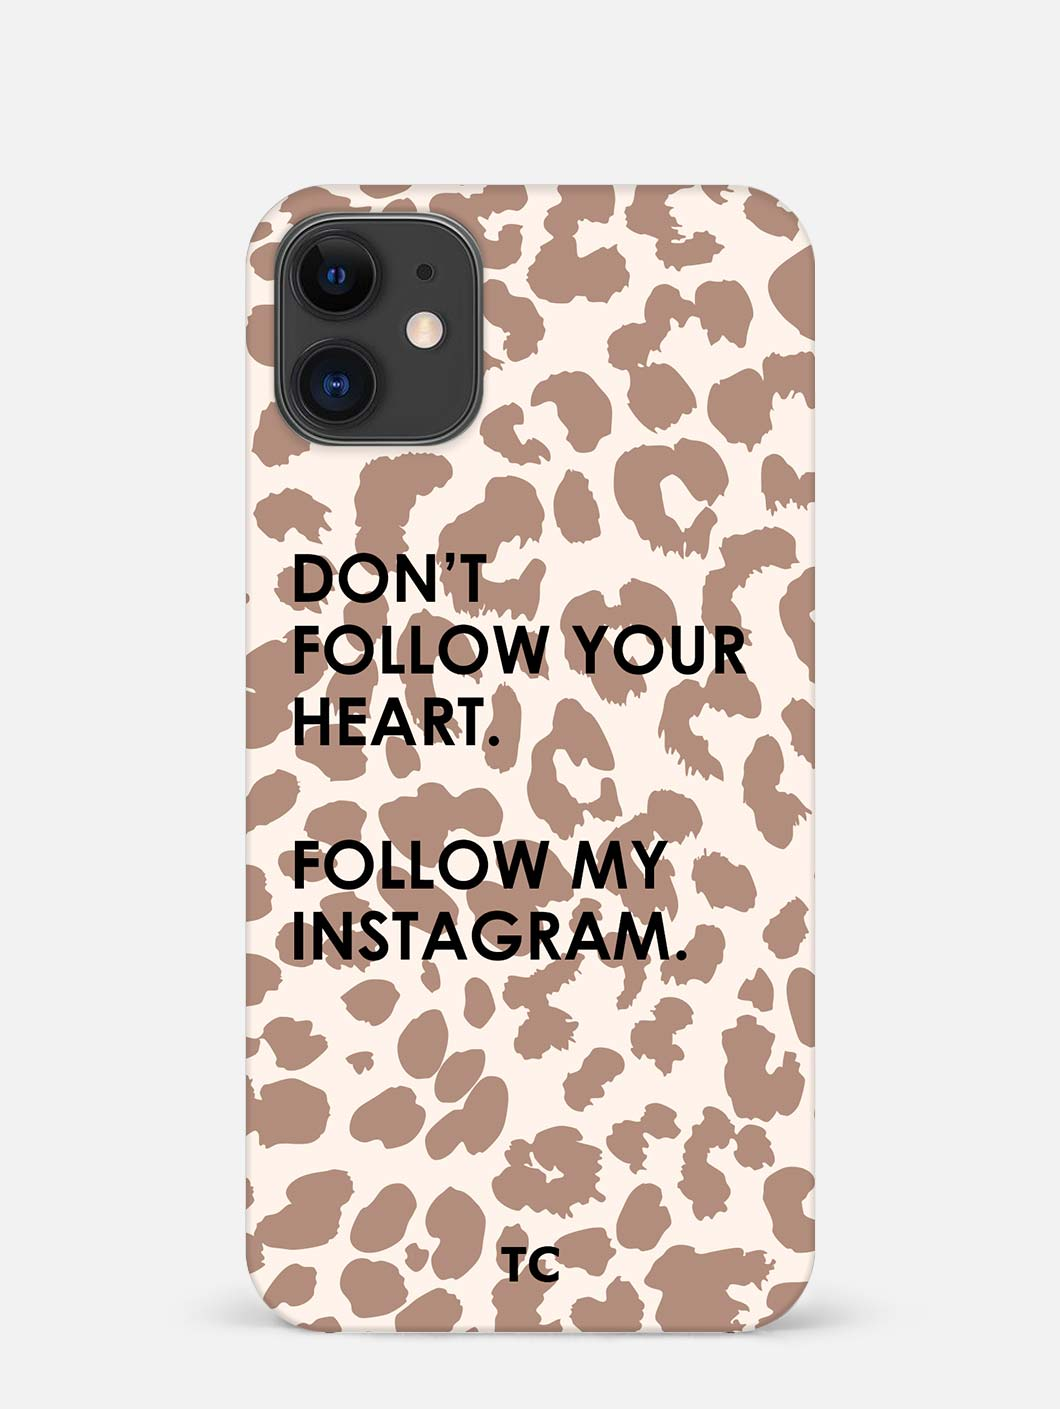 Instagram iPhone 12 Mini Mobile Cover